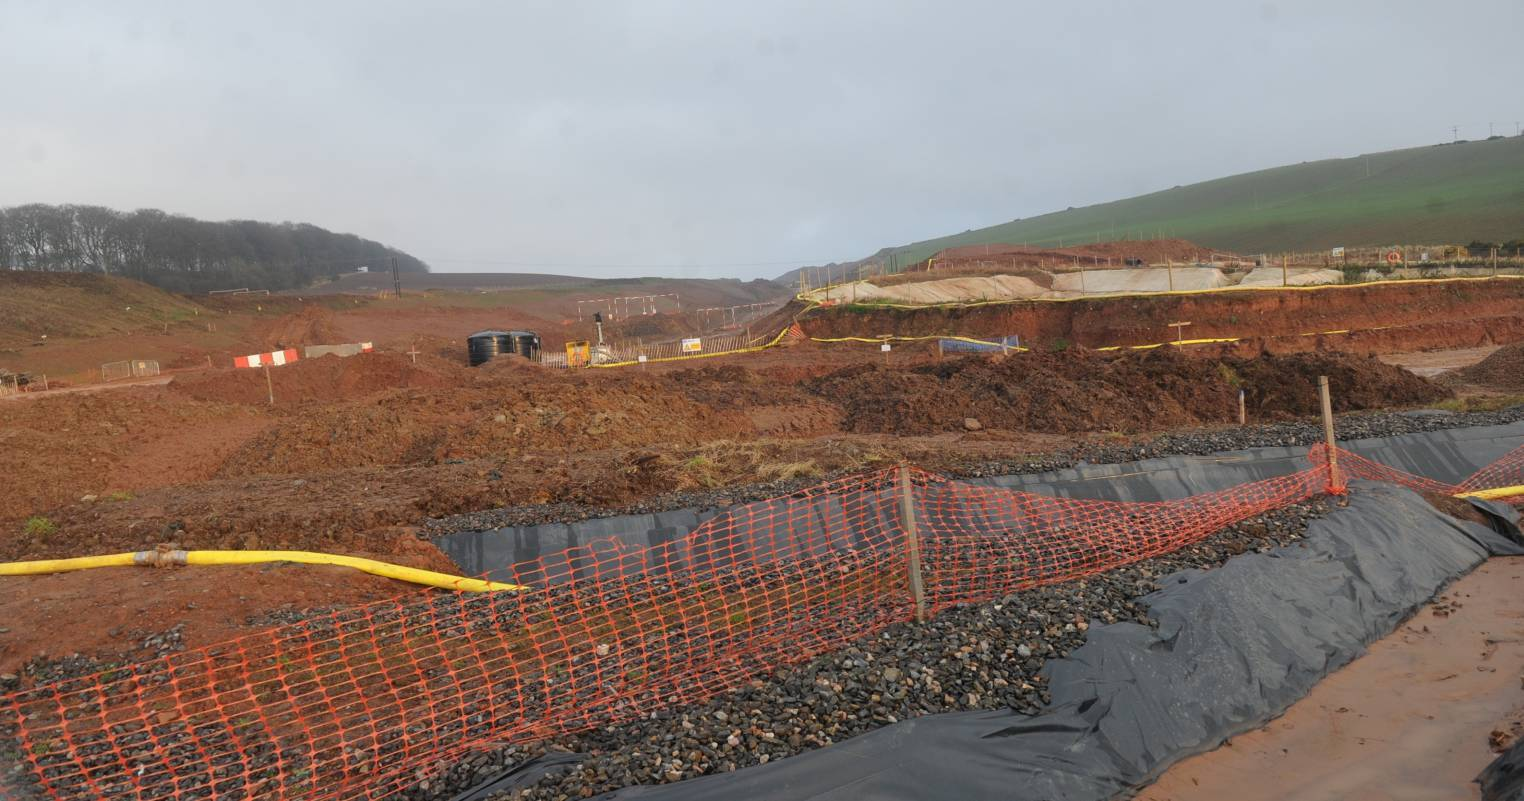 The AWPR works at Stonehaven.